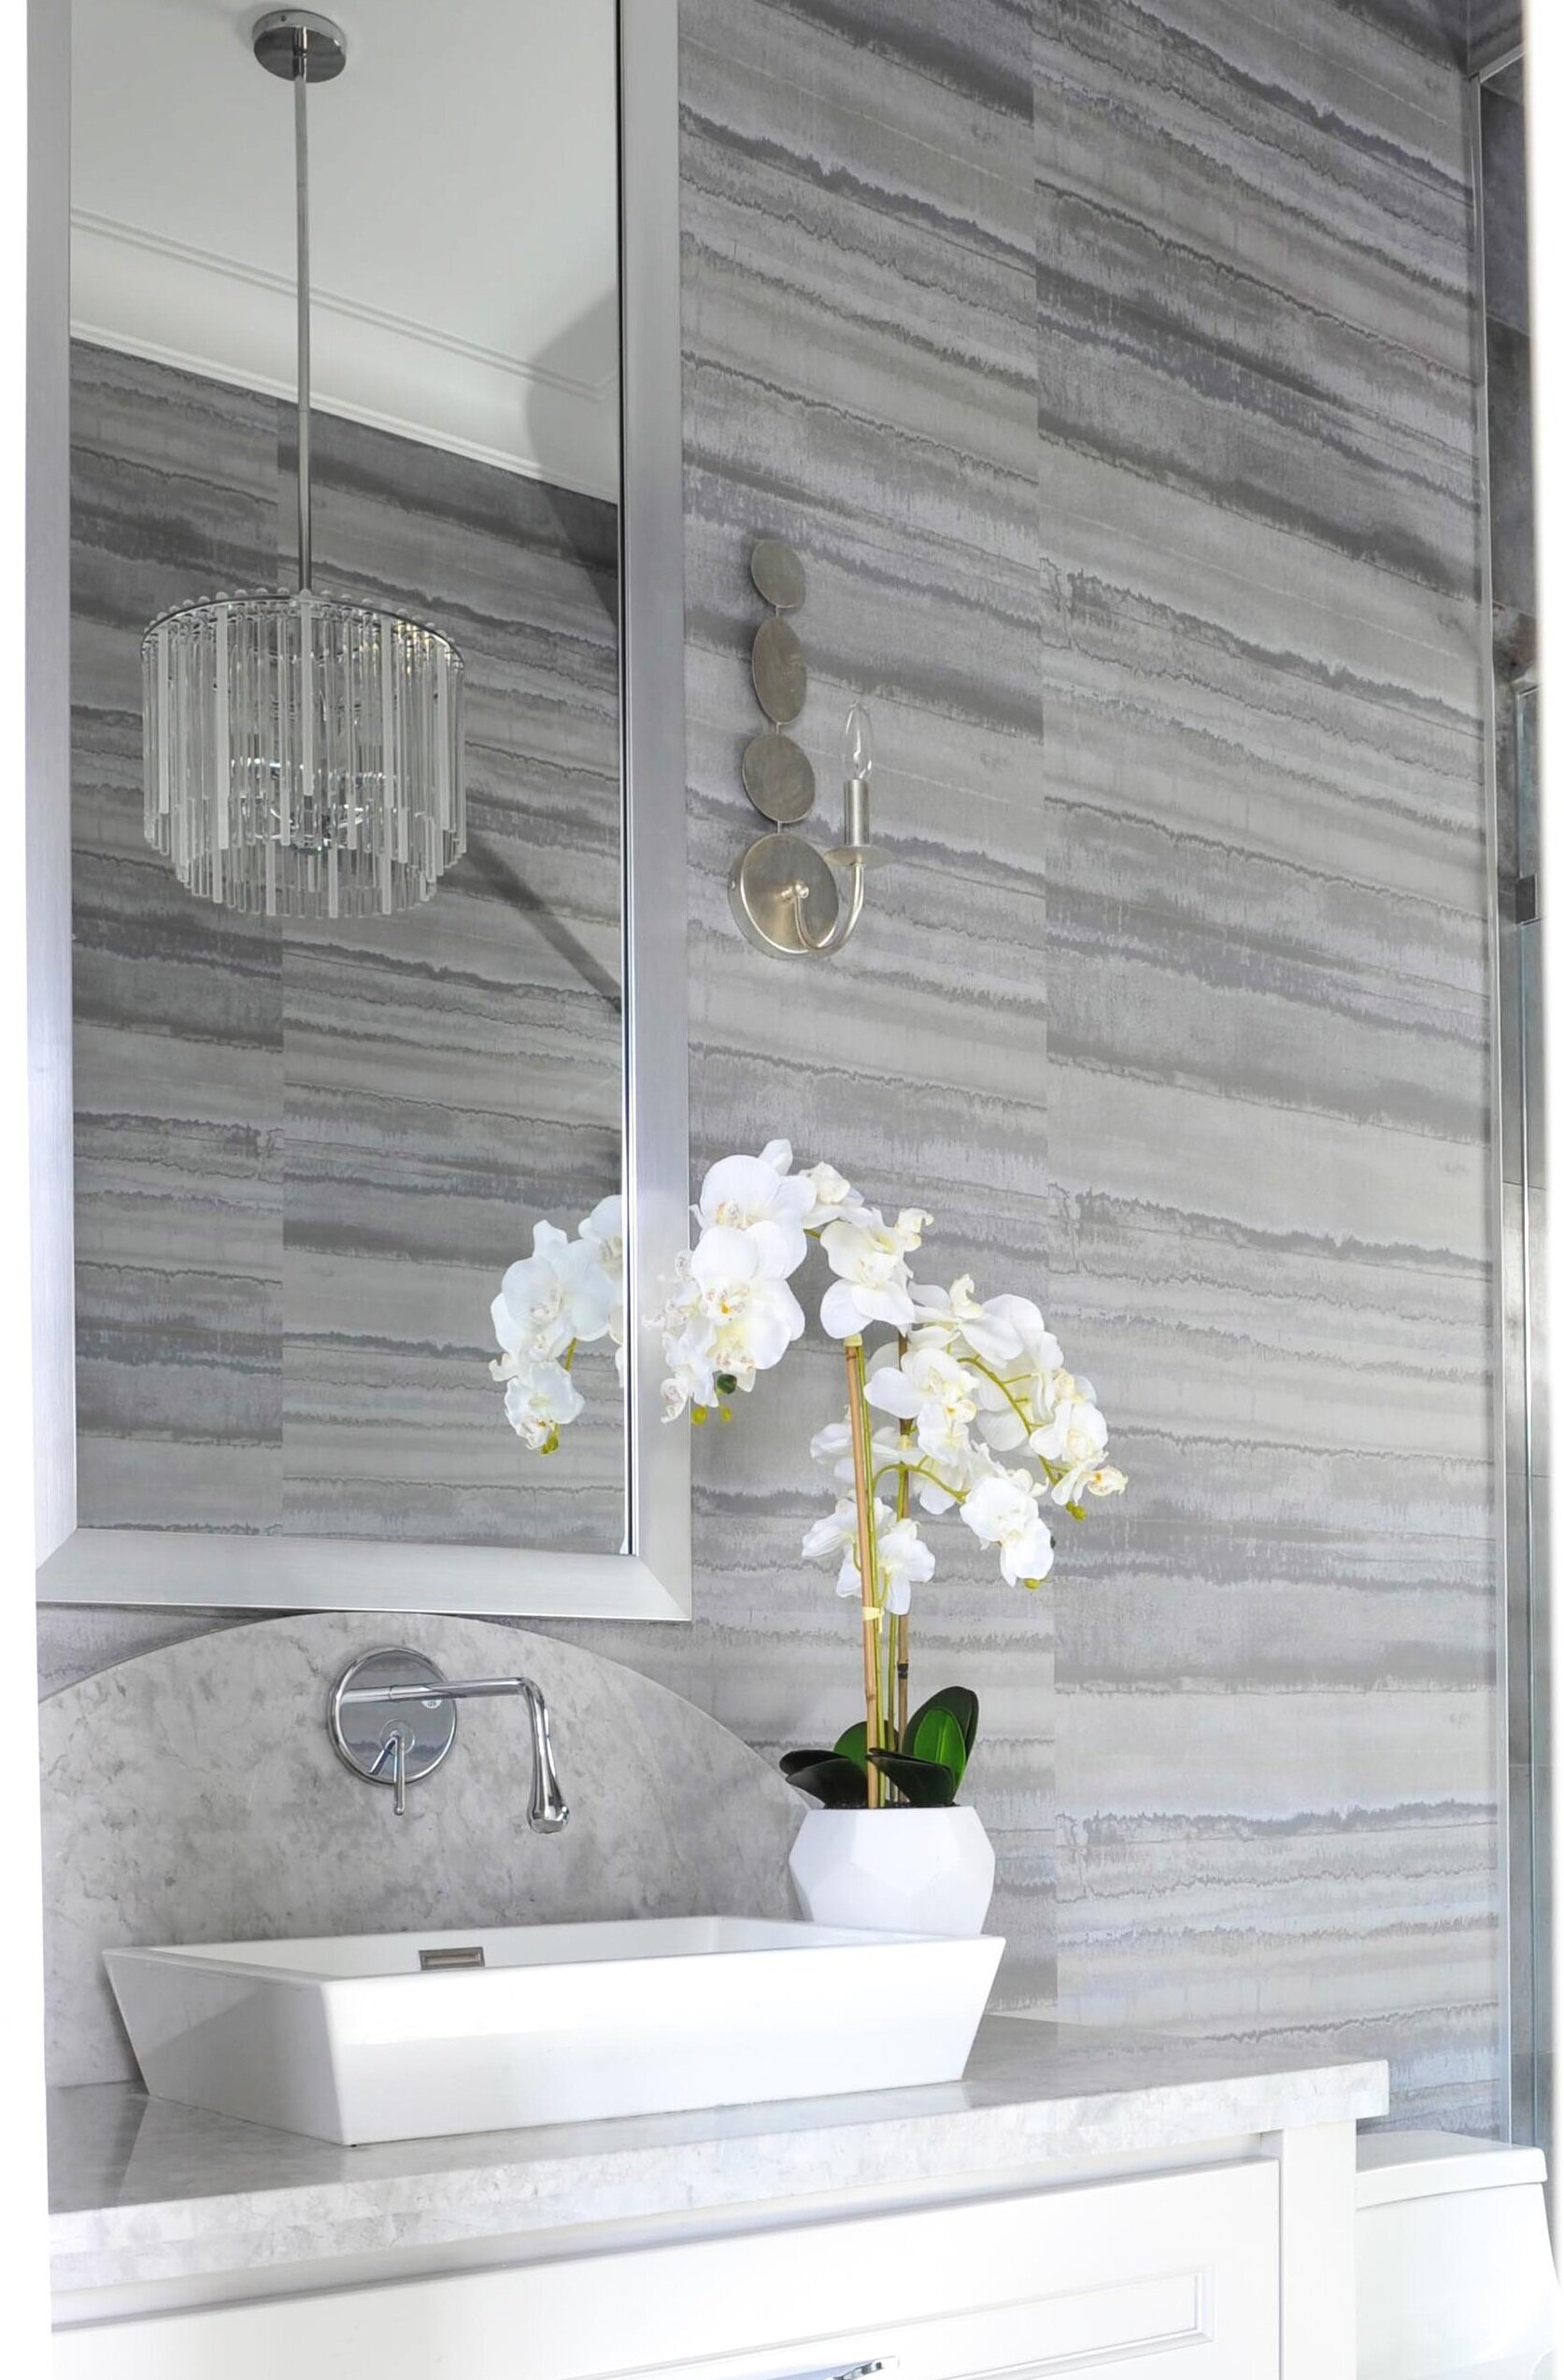 - Incorporating a variety of light sources is a very important functional consideration in bathroom design. The wall sconces on either side of the mirror provide an even, flattering light for guests to look their best. The ceiling chandelier, that operates on a separate switch, provides the perfect amount of ambient light as needed and looks stunning whether turned on or off.Paulie DhillonPrincipal/Lead Designer, Design Therapy Interior DesignPhotographer: Tracey Aytonwww.idtherapy.caLayla CollectionBleecker Collection